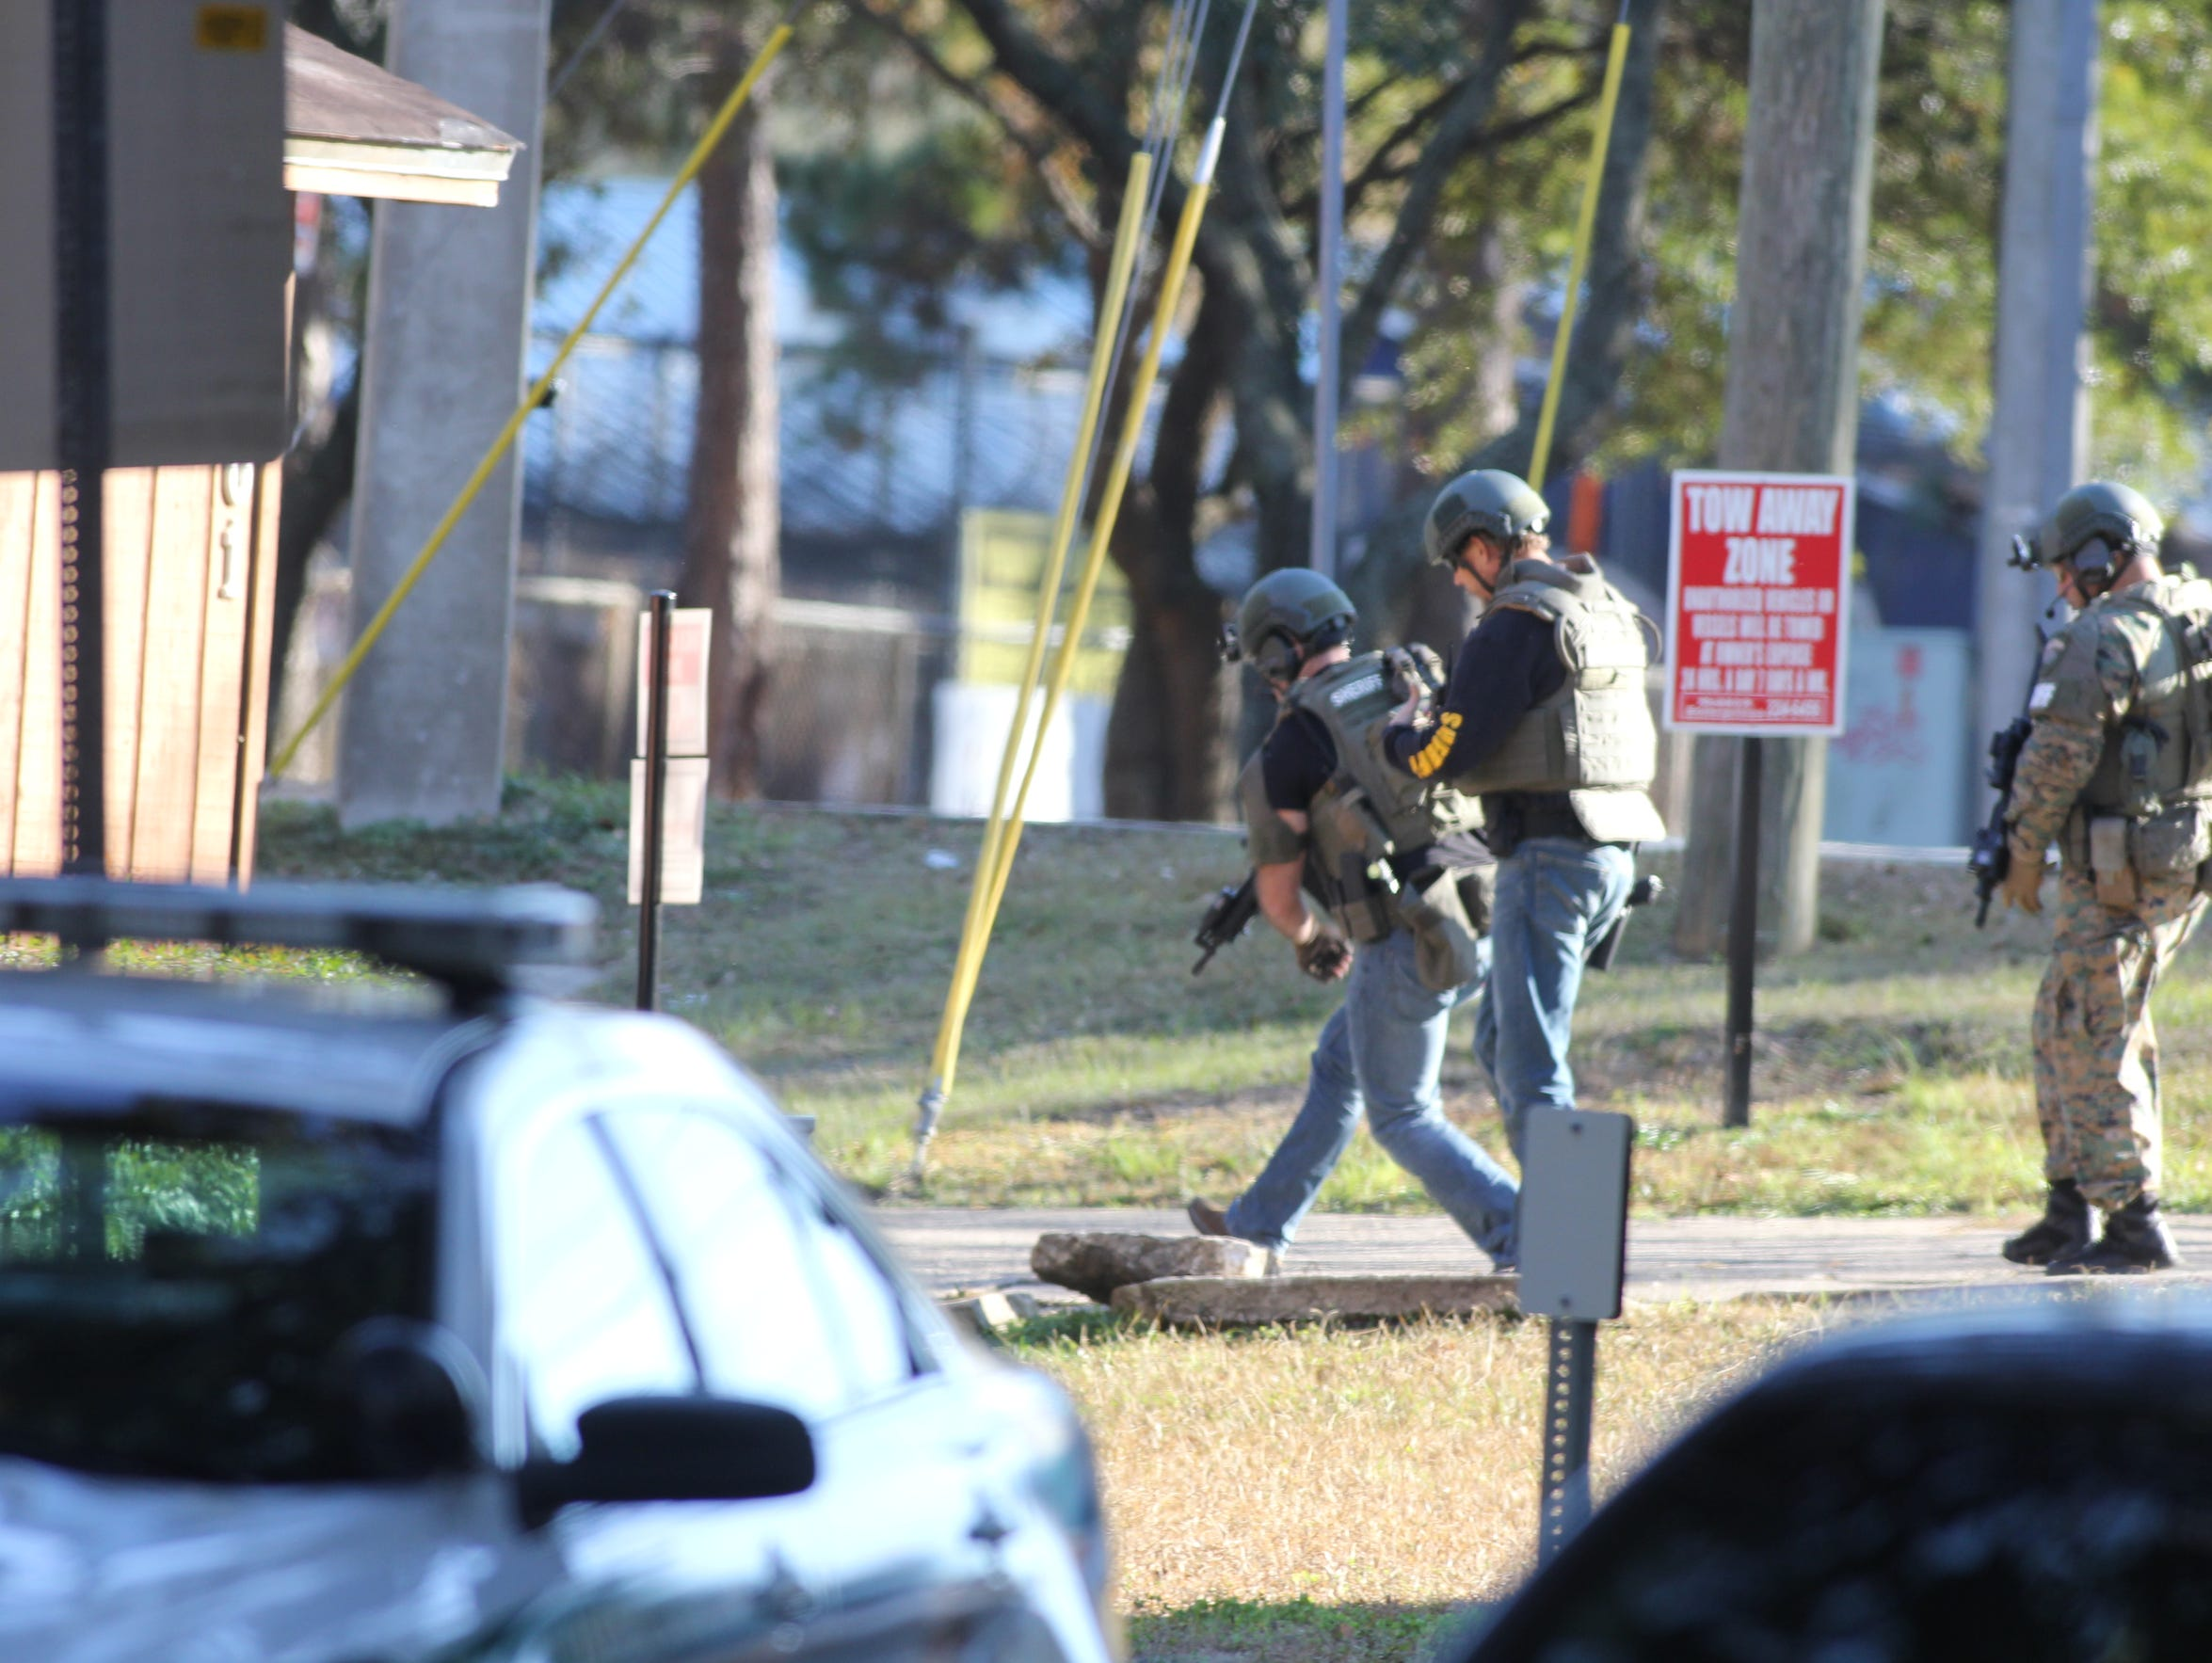 Leon County Sheriff's Office SWAT Team members move